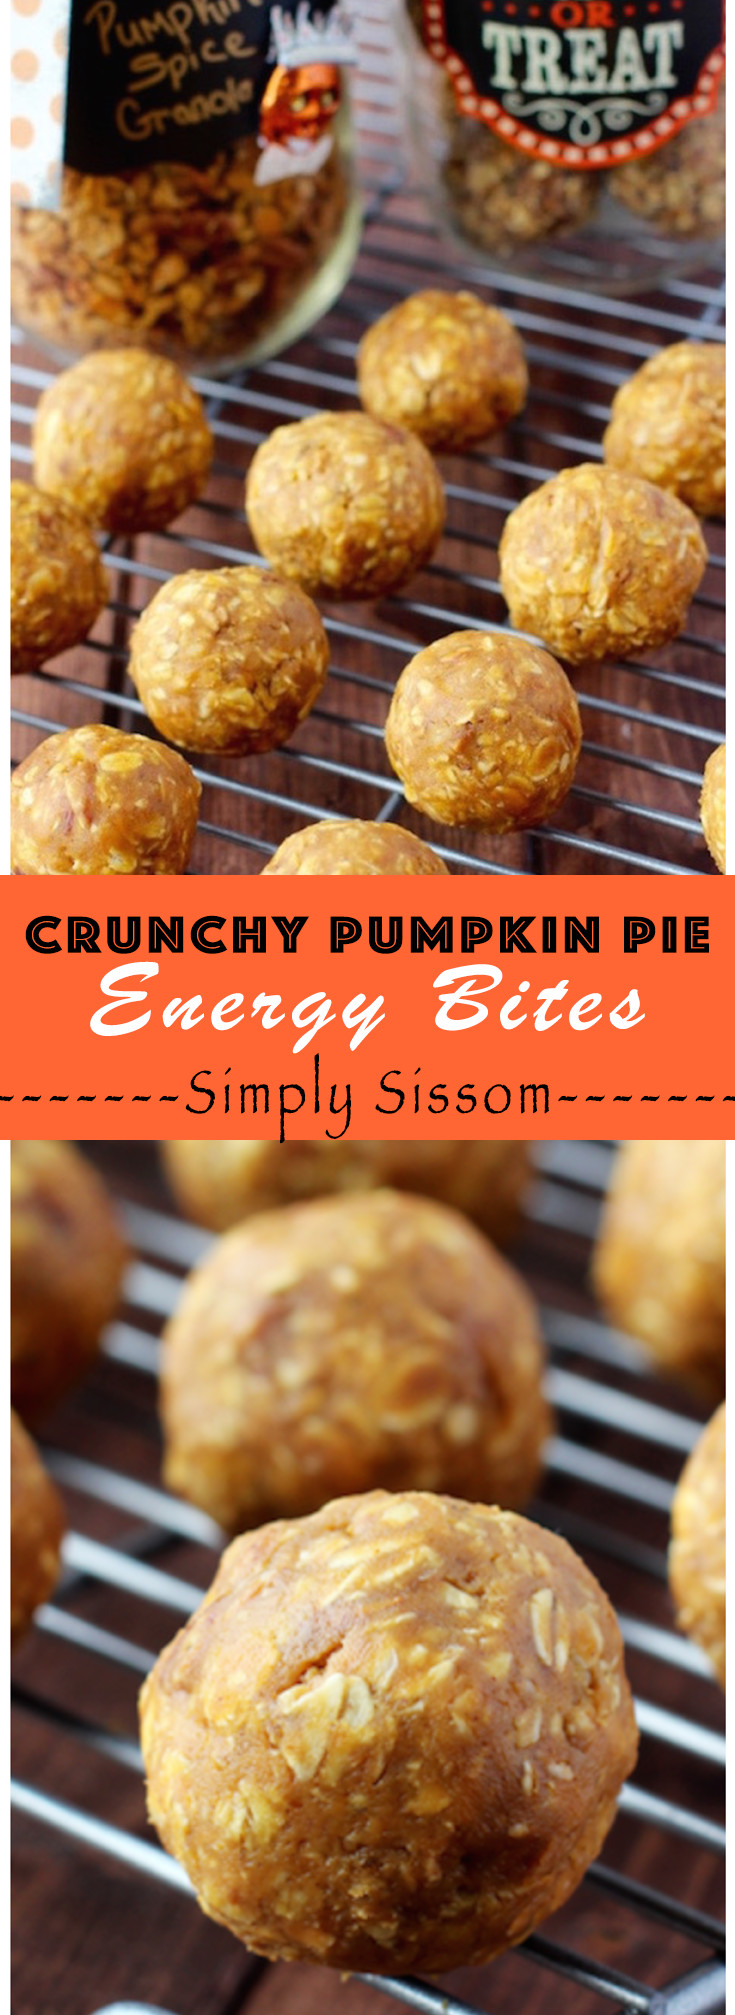 Crunchy Pumpkin Pie Energy Balls are the perfect grab and go snack, post work-out treat, or treat when you are craving something sweet!